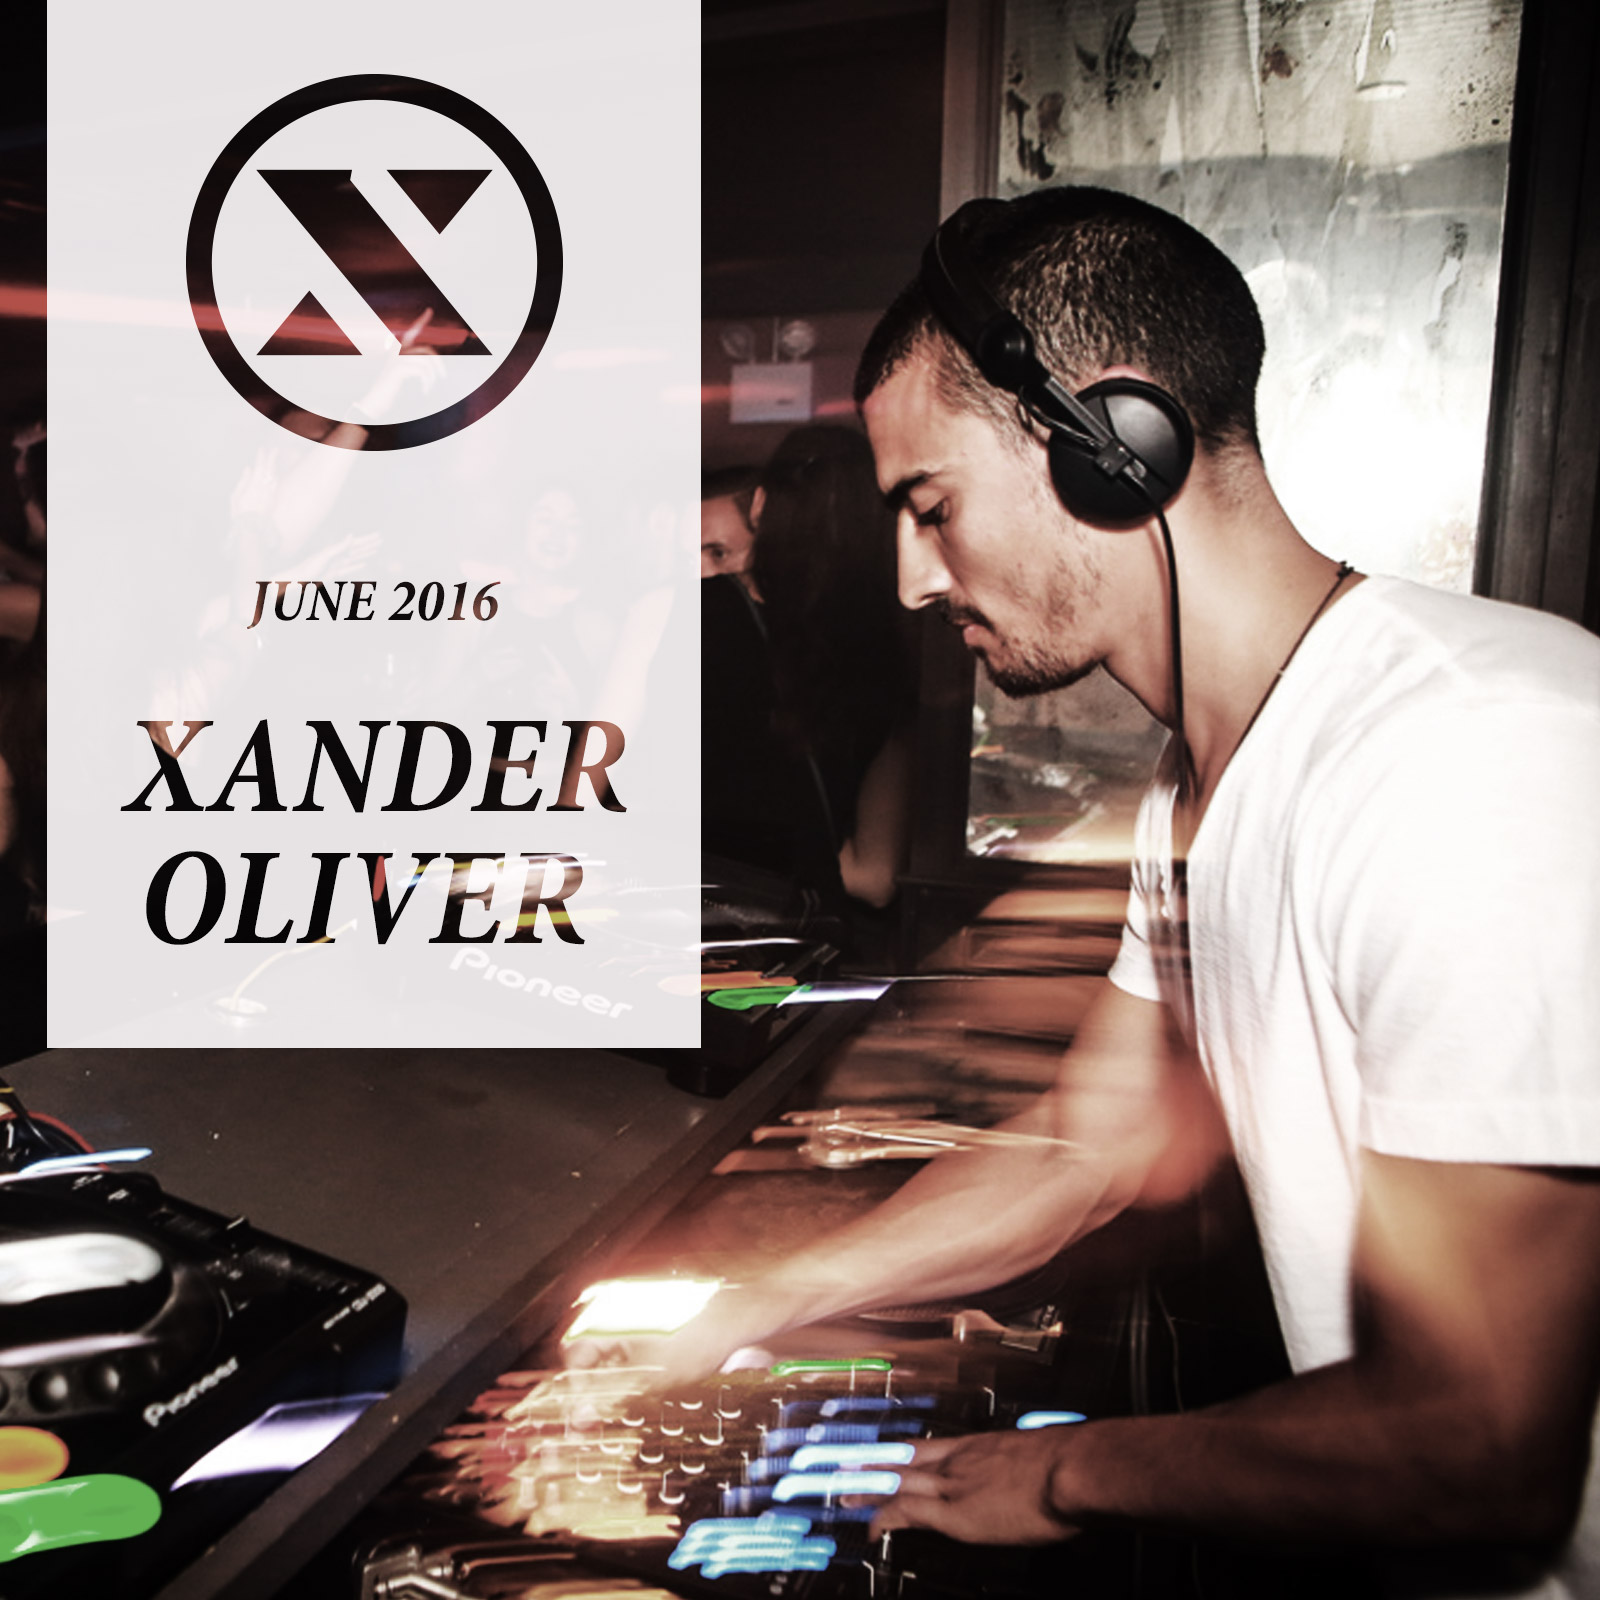 Xander Oliver artwork